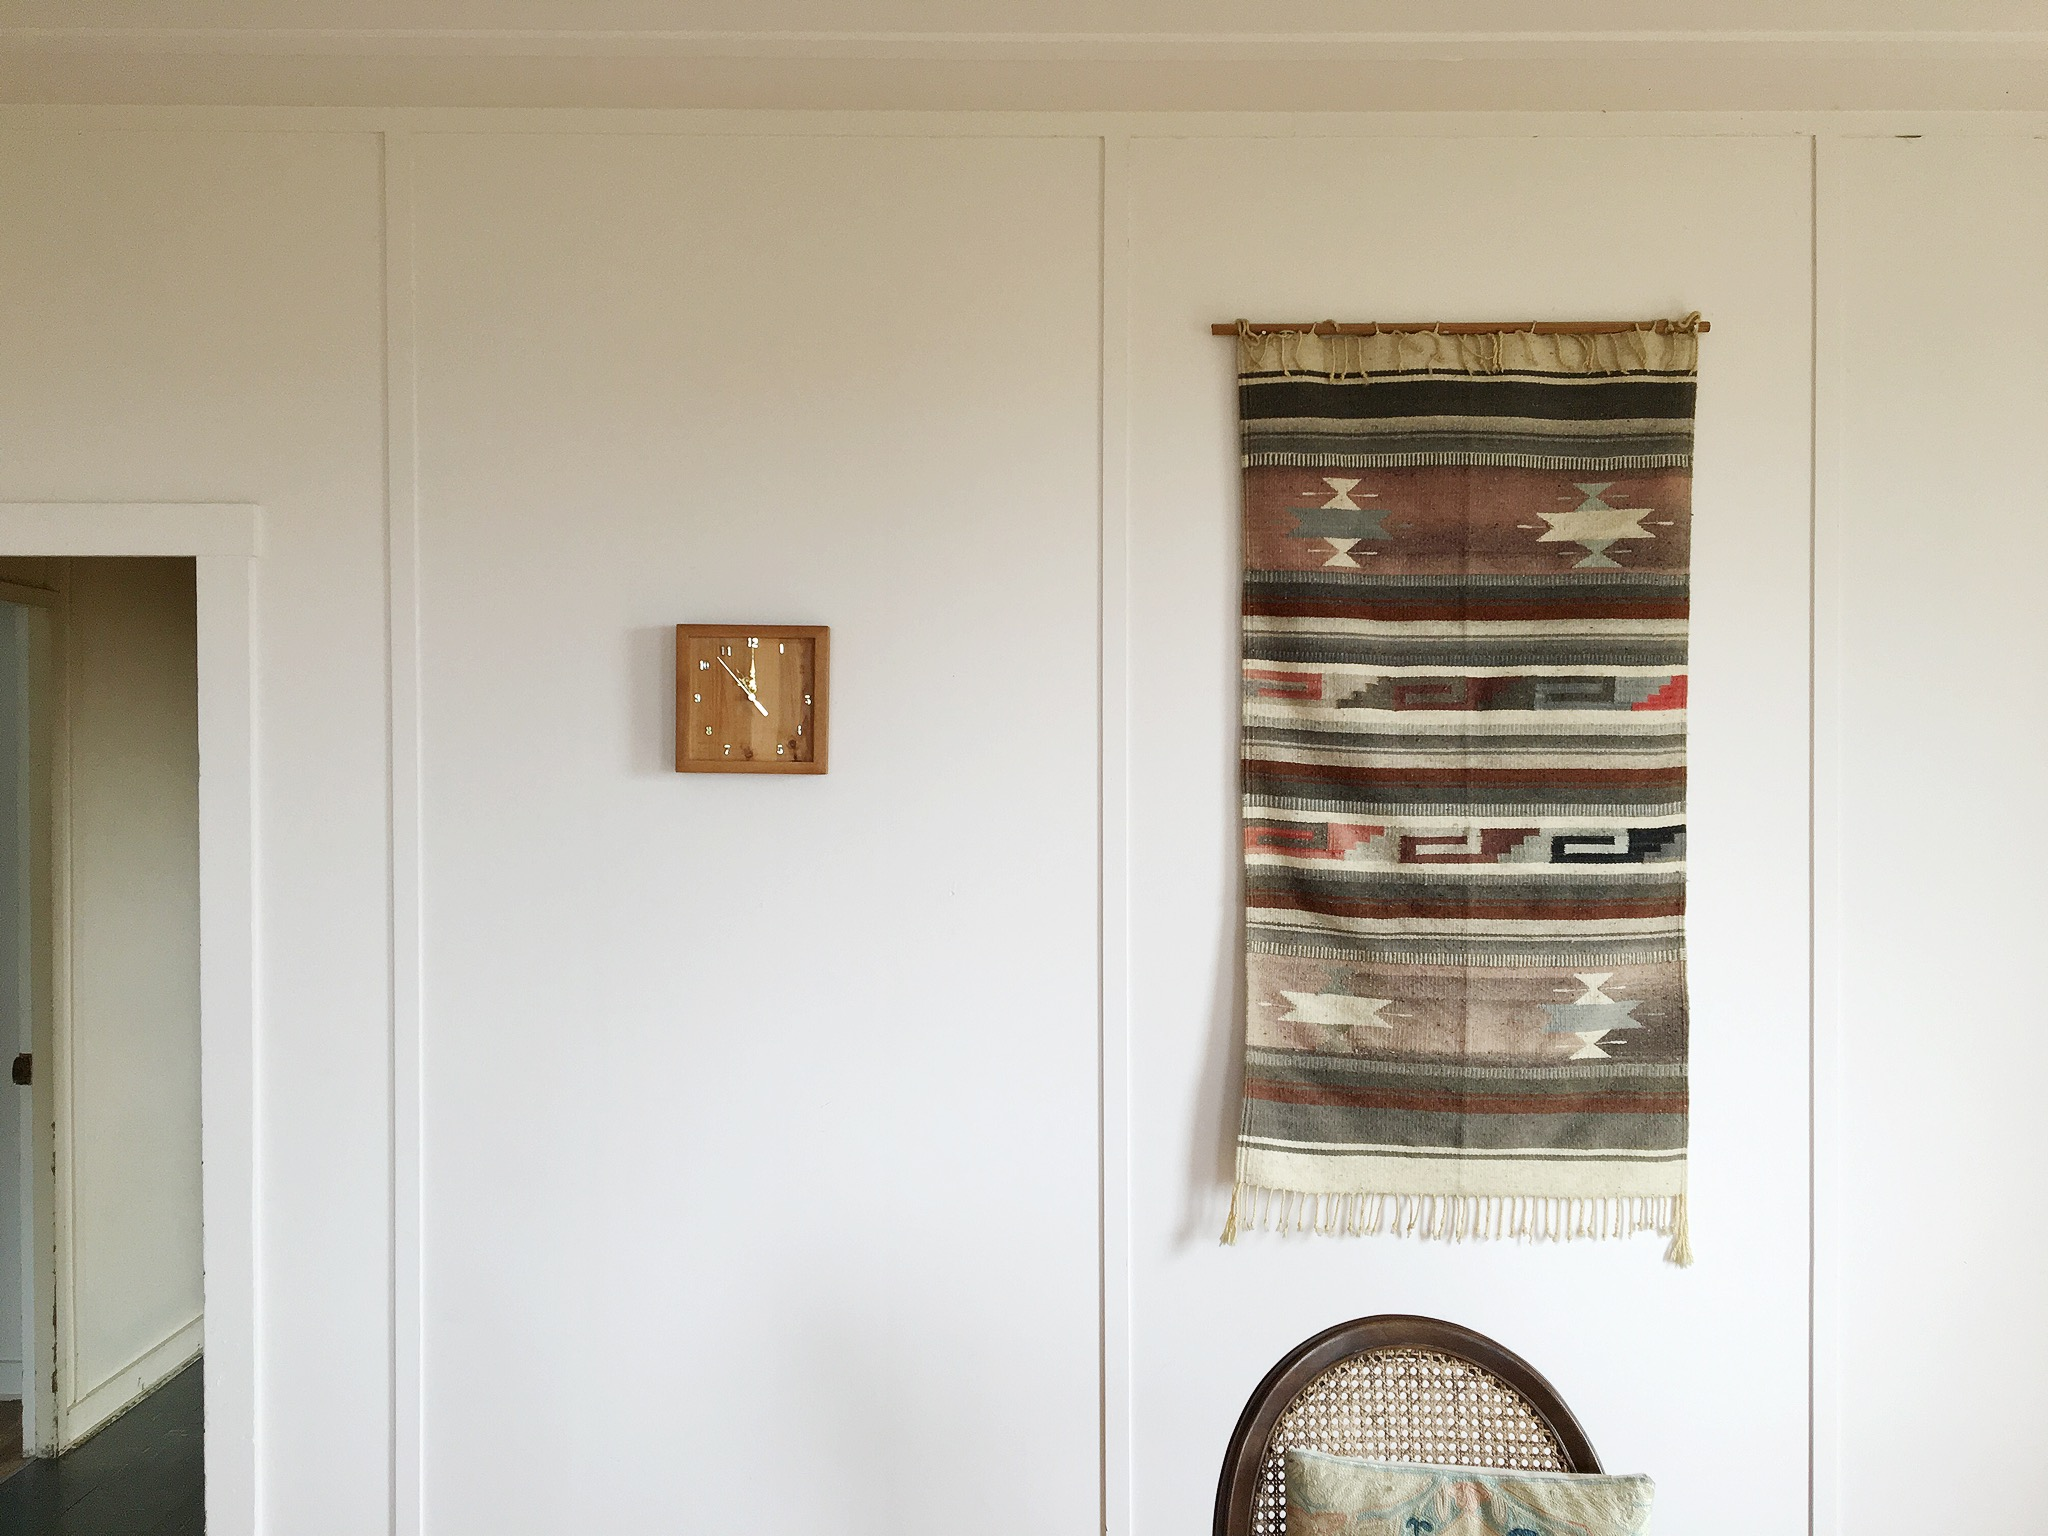 Midcentury clock plus a woven wall-hanging. There's an energy to these pairings. Vibrant and relaxed, chic and comfortable.